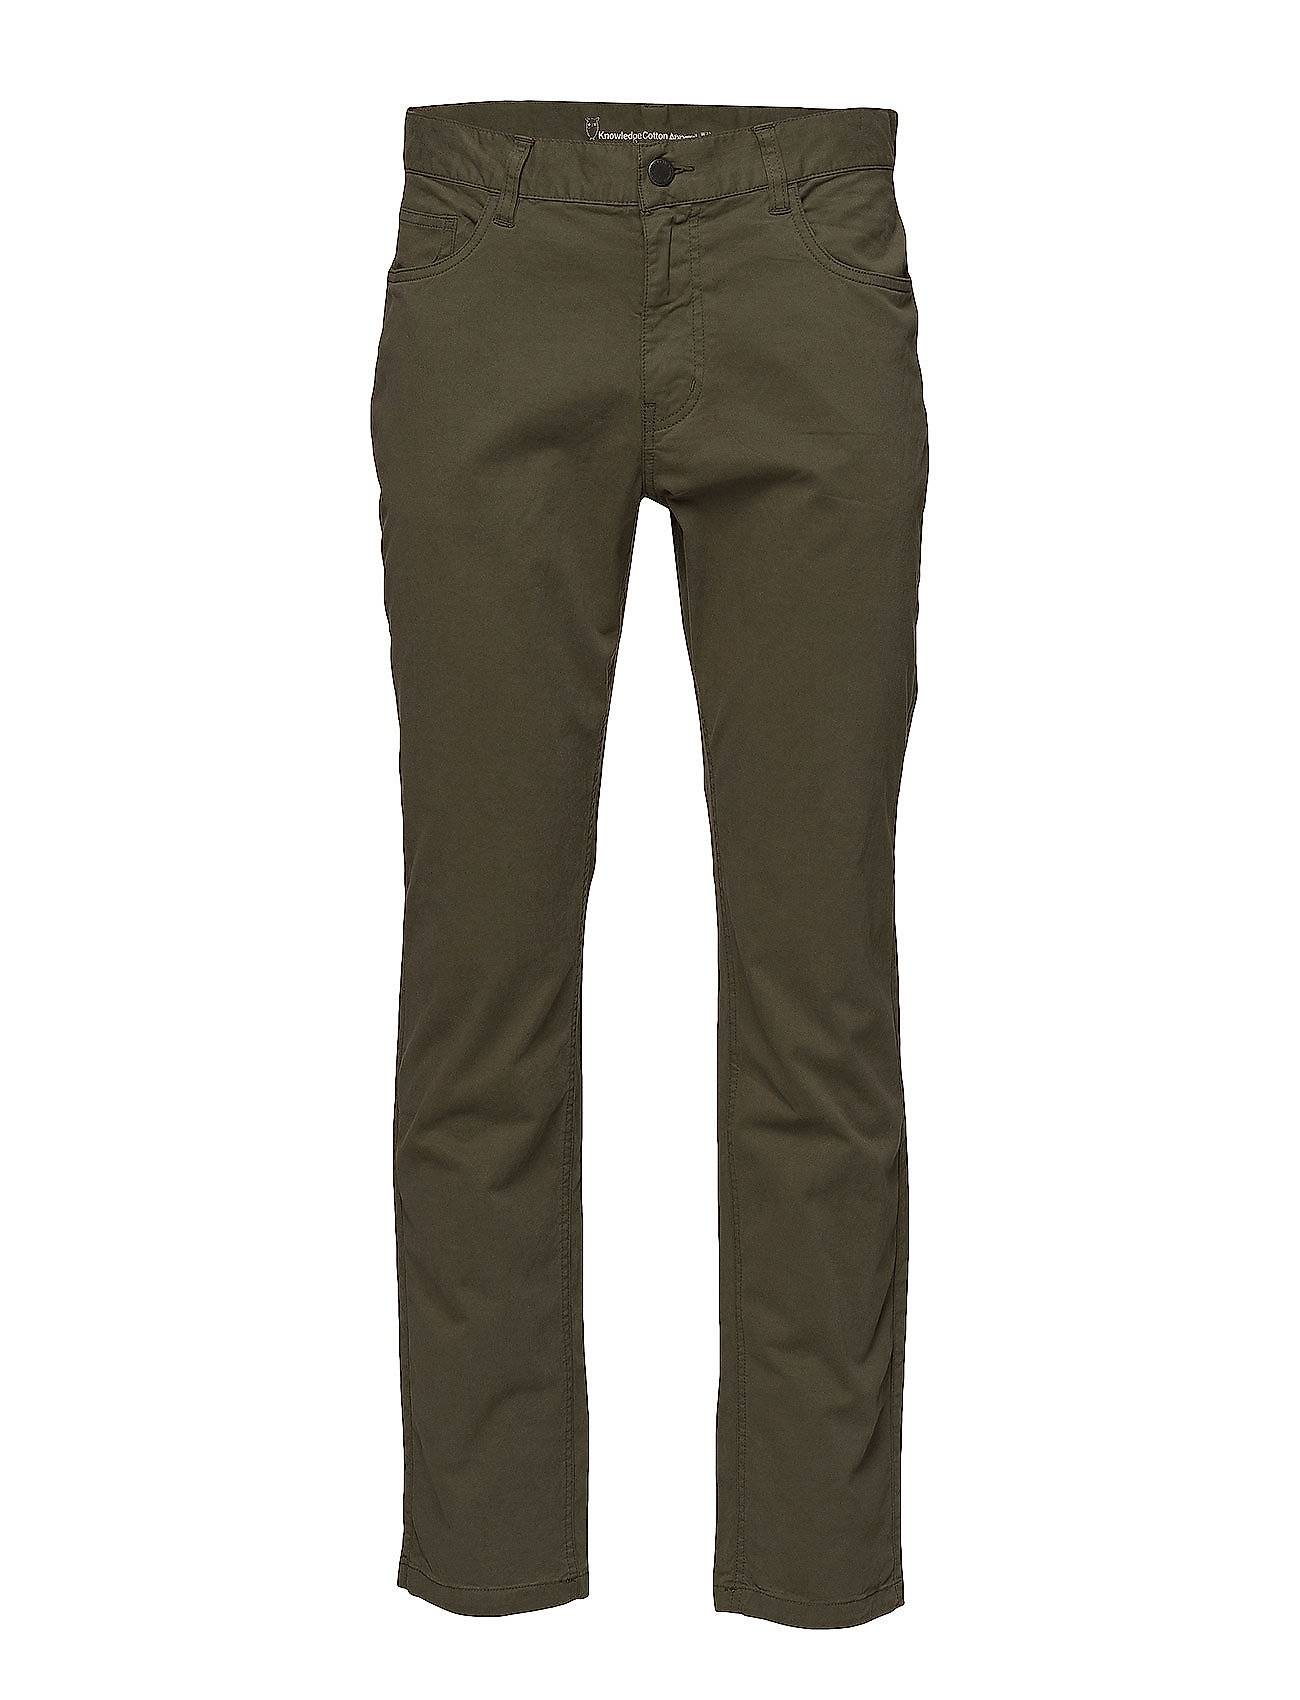 Knowledge Cotton Apparel 5-Pocket Stretched Jeans - Gots